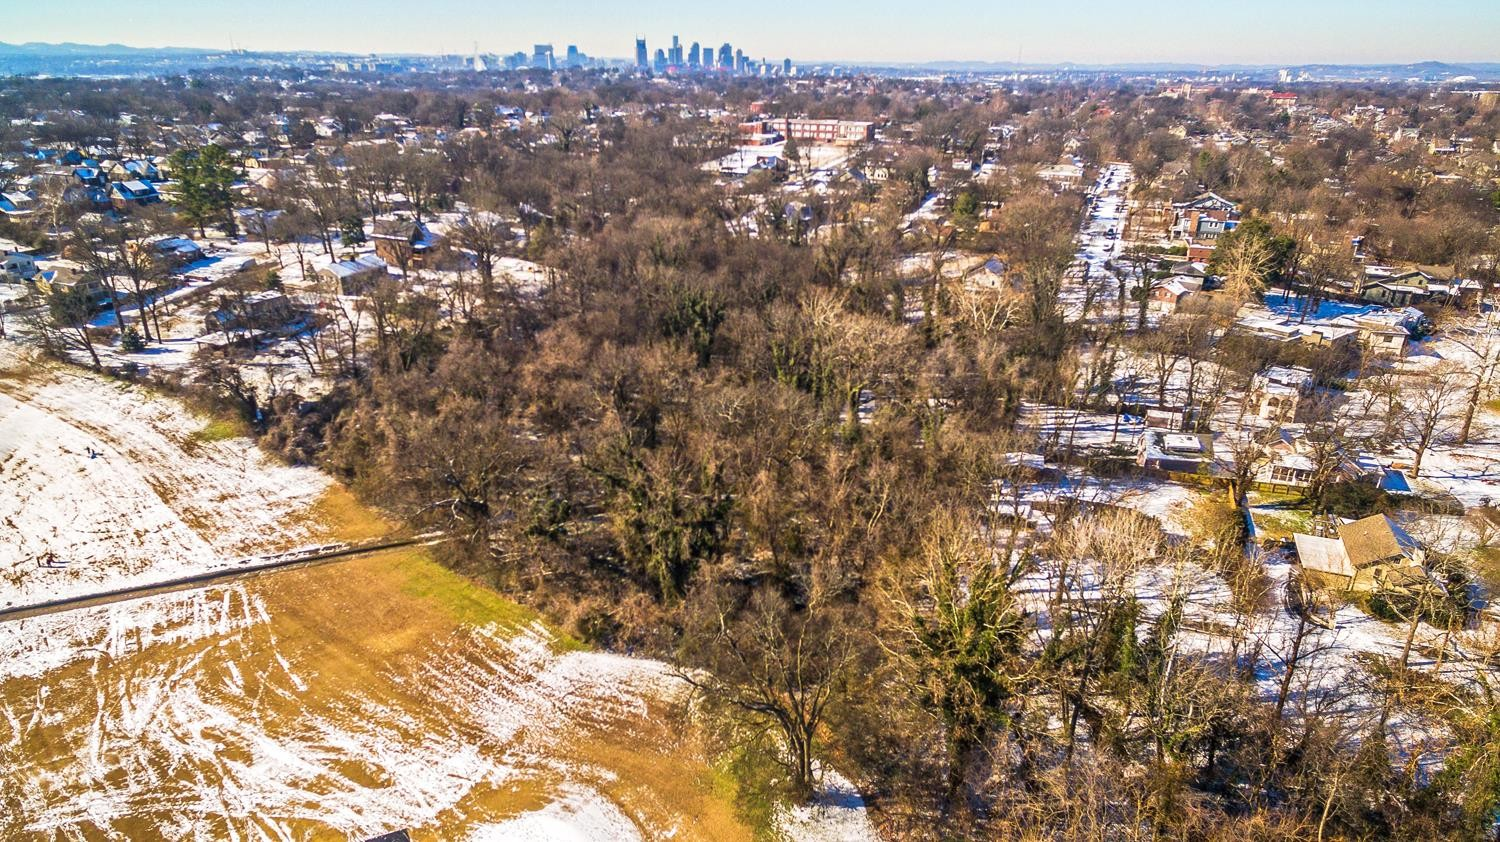 As rare as a Pink Diamond, This piece of land in the most sought after neighborhoods of Nashville, Lockeland Springs area, walk to Shelby park/golf course, Lockeland table, under a mile to 5 Points, Under 10 minutes to downtown. This 5.38 Acres of land is a Brand New Development waiting to happen.